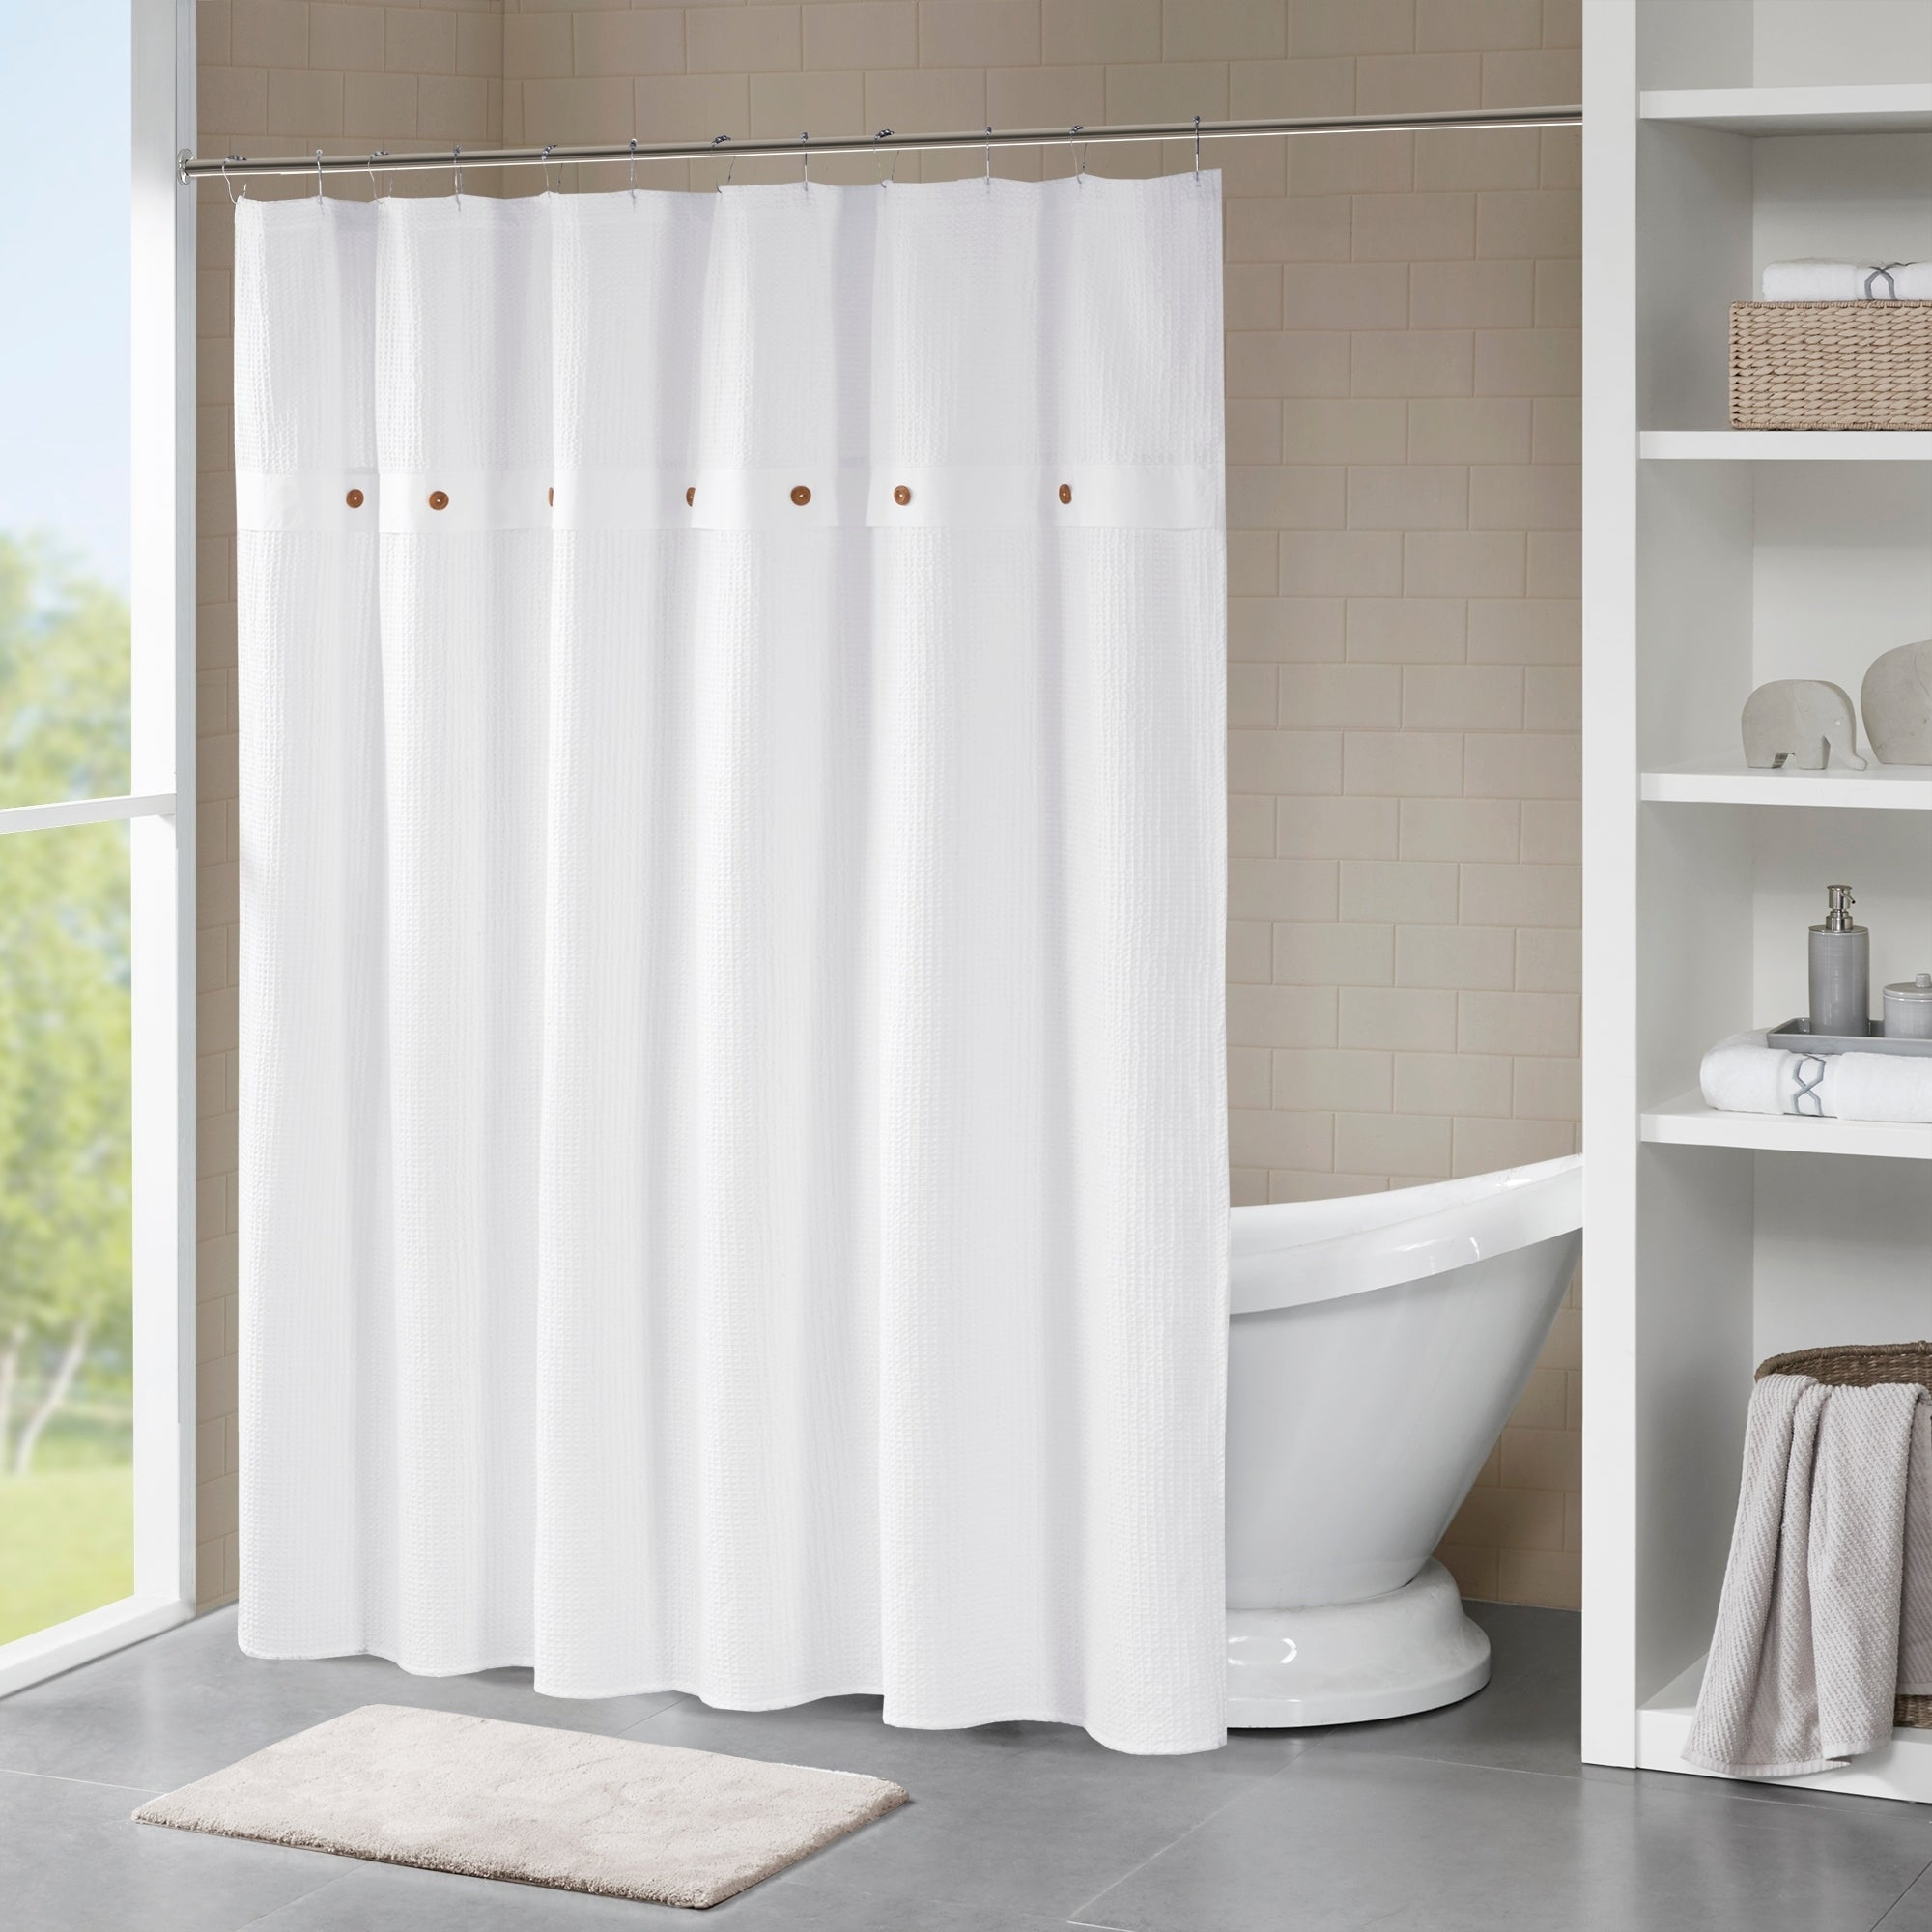 Buy Cotton Shower Curtains Online at Overstock.com | Our Best Shower ...